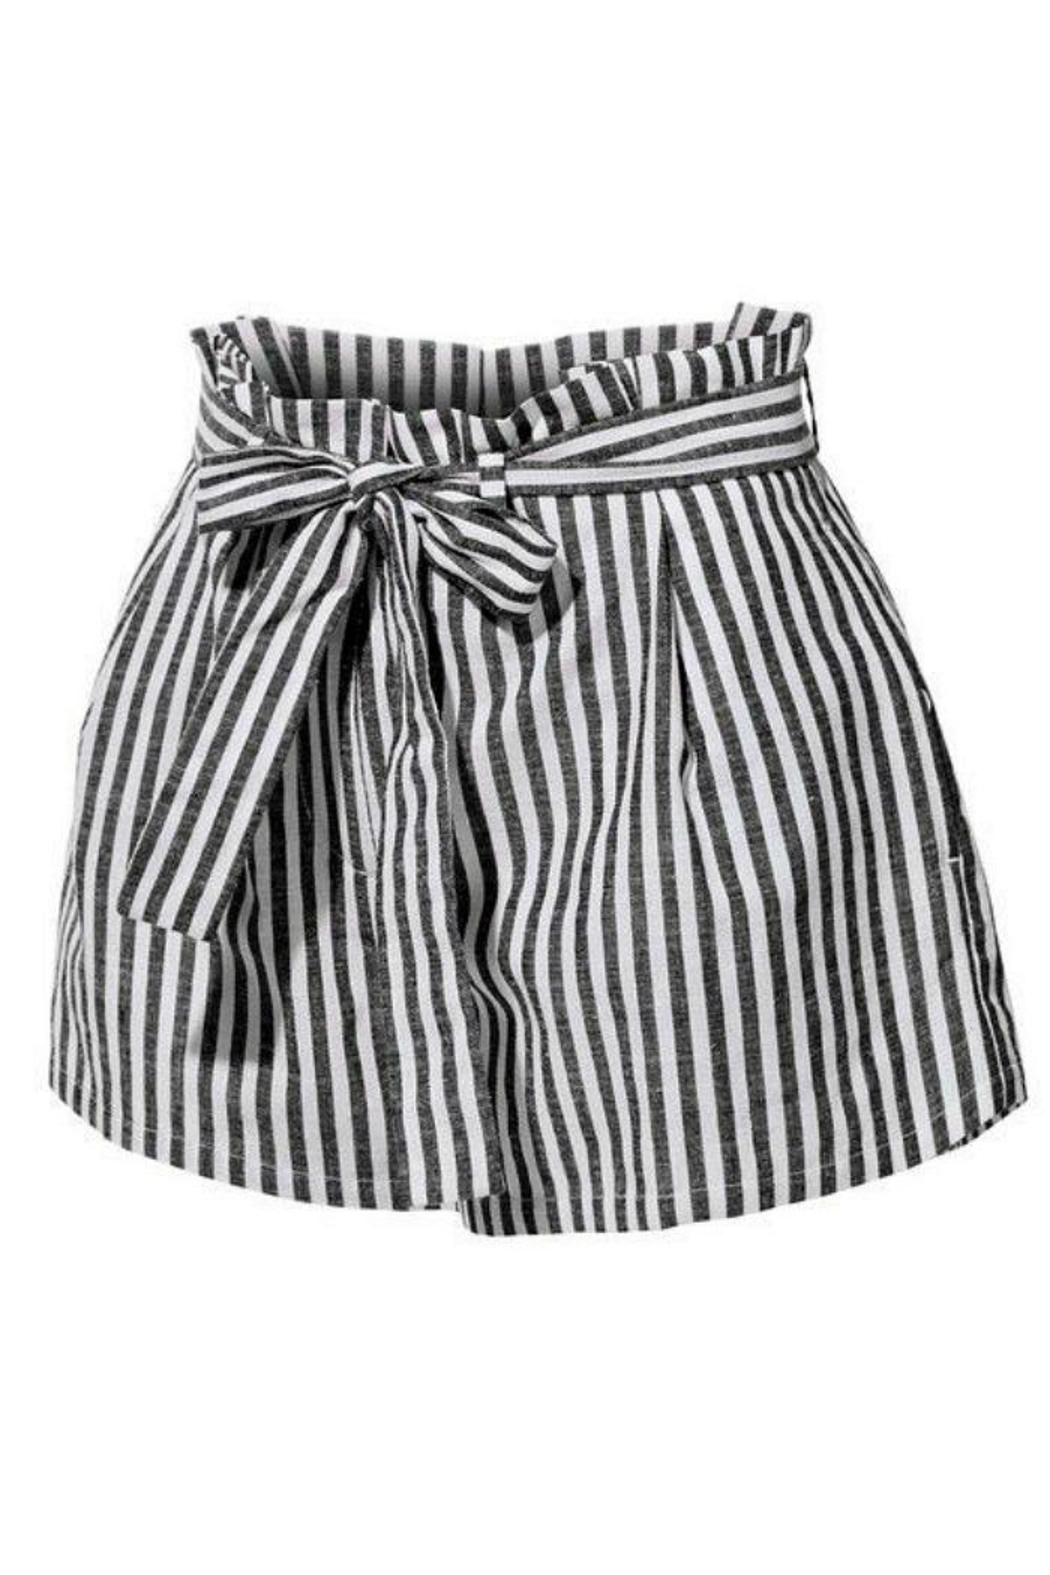 2Sable Striped Paperbag-Waisted Shorts - Front Full Image